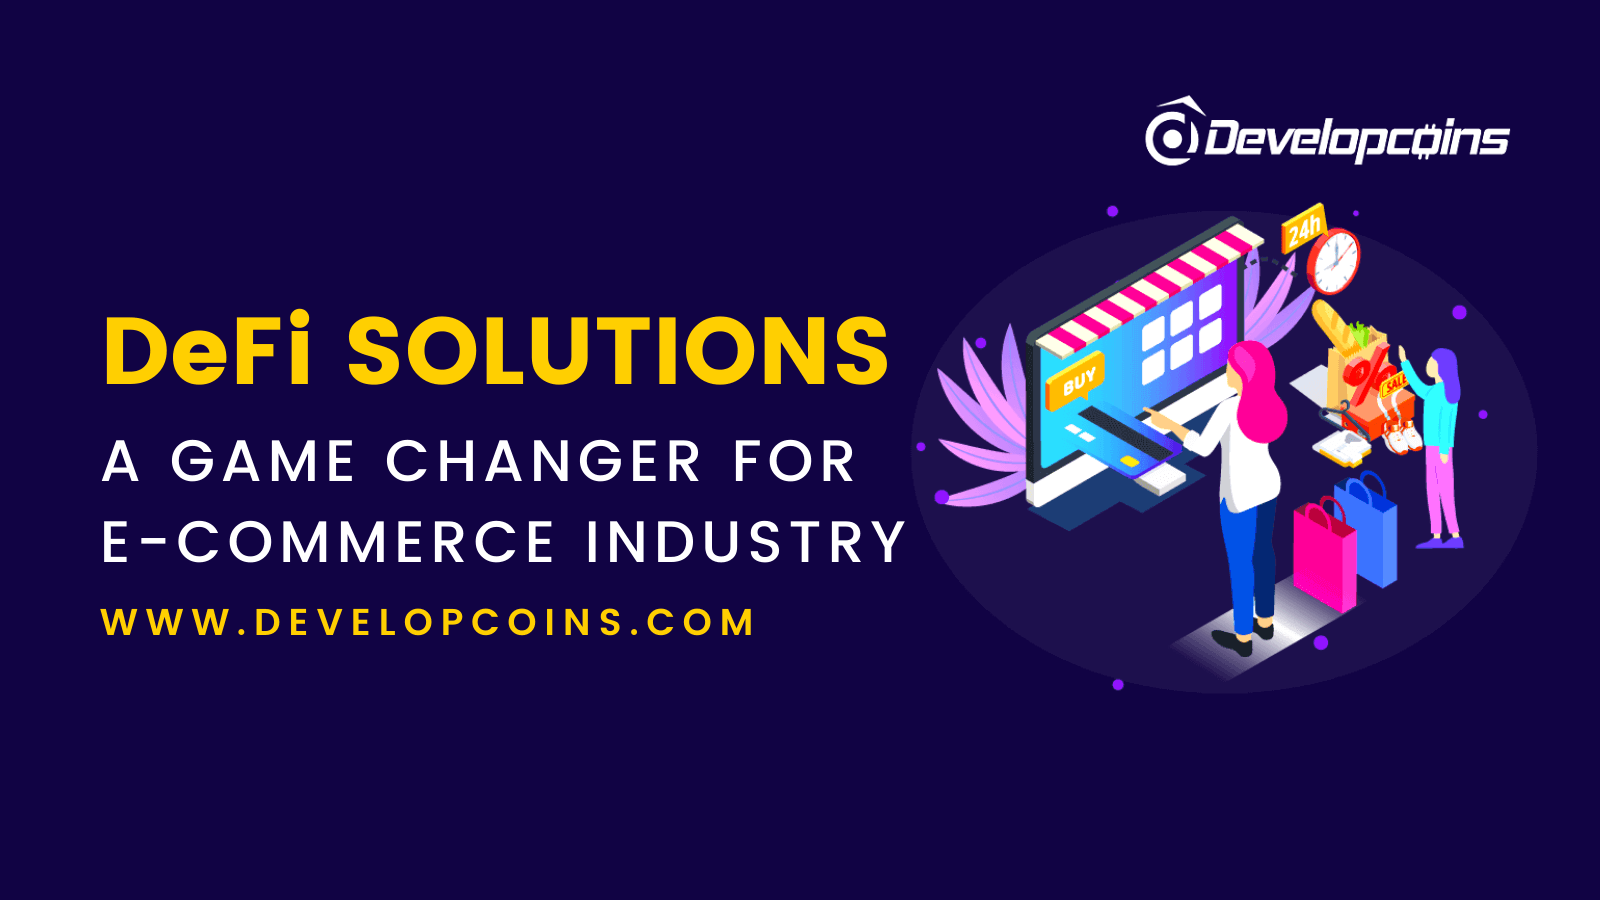 DeFi Solutions : A Game Changer For E-commerce Industry